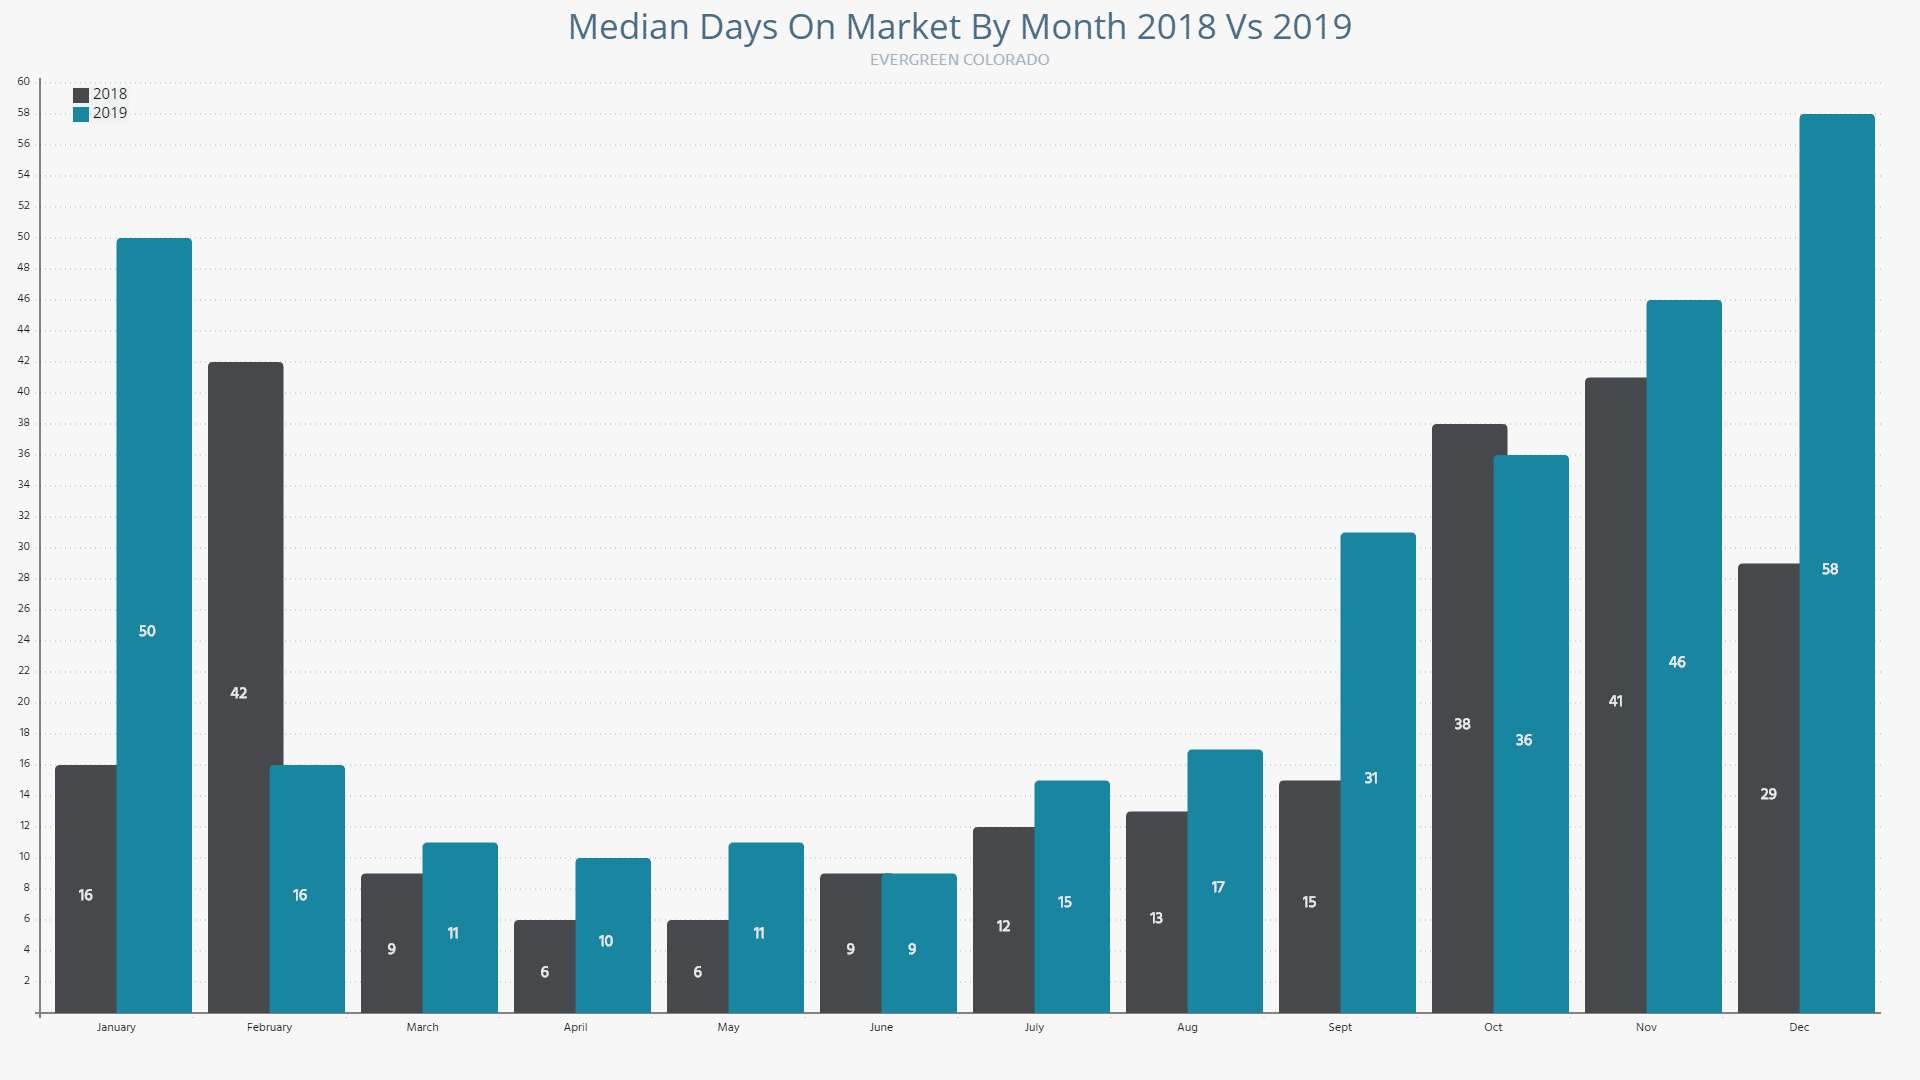 Evergreen housing median days on market 2018 vs 2019